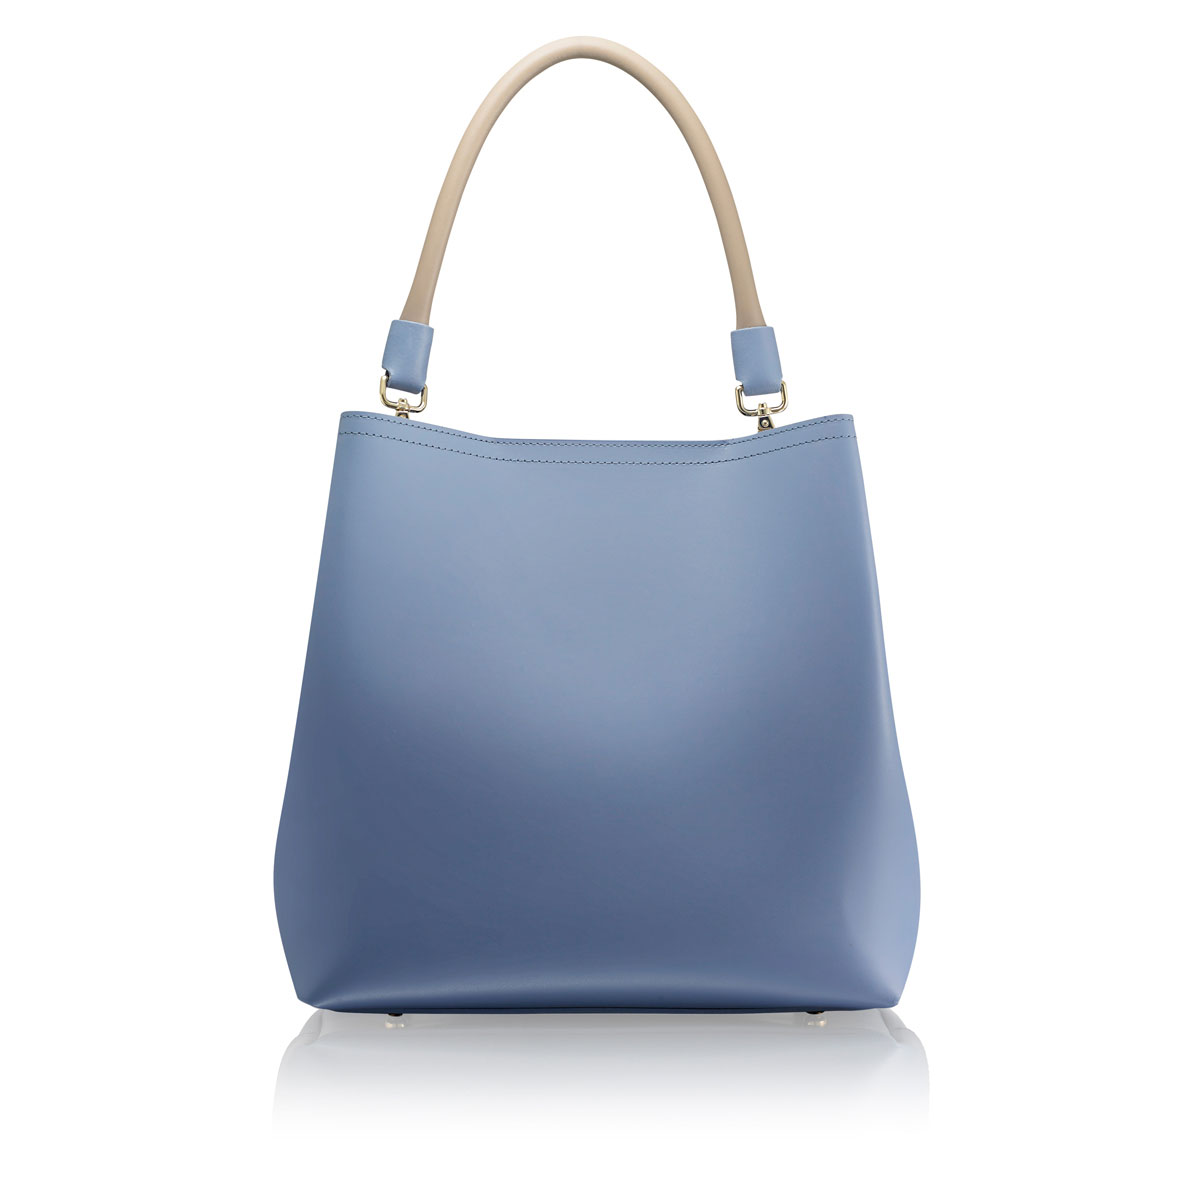 Russell and Bromley COLETTE Structured Hobo